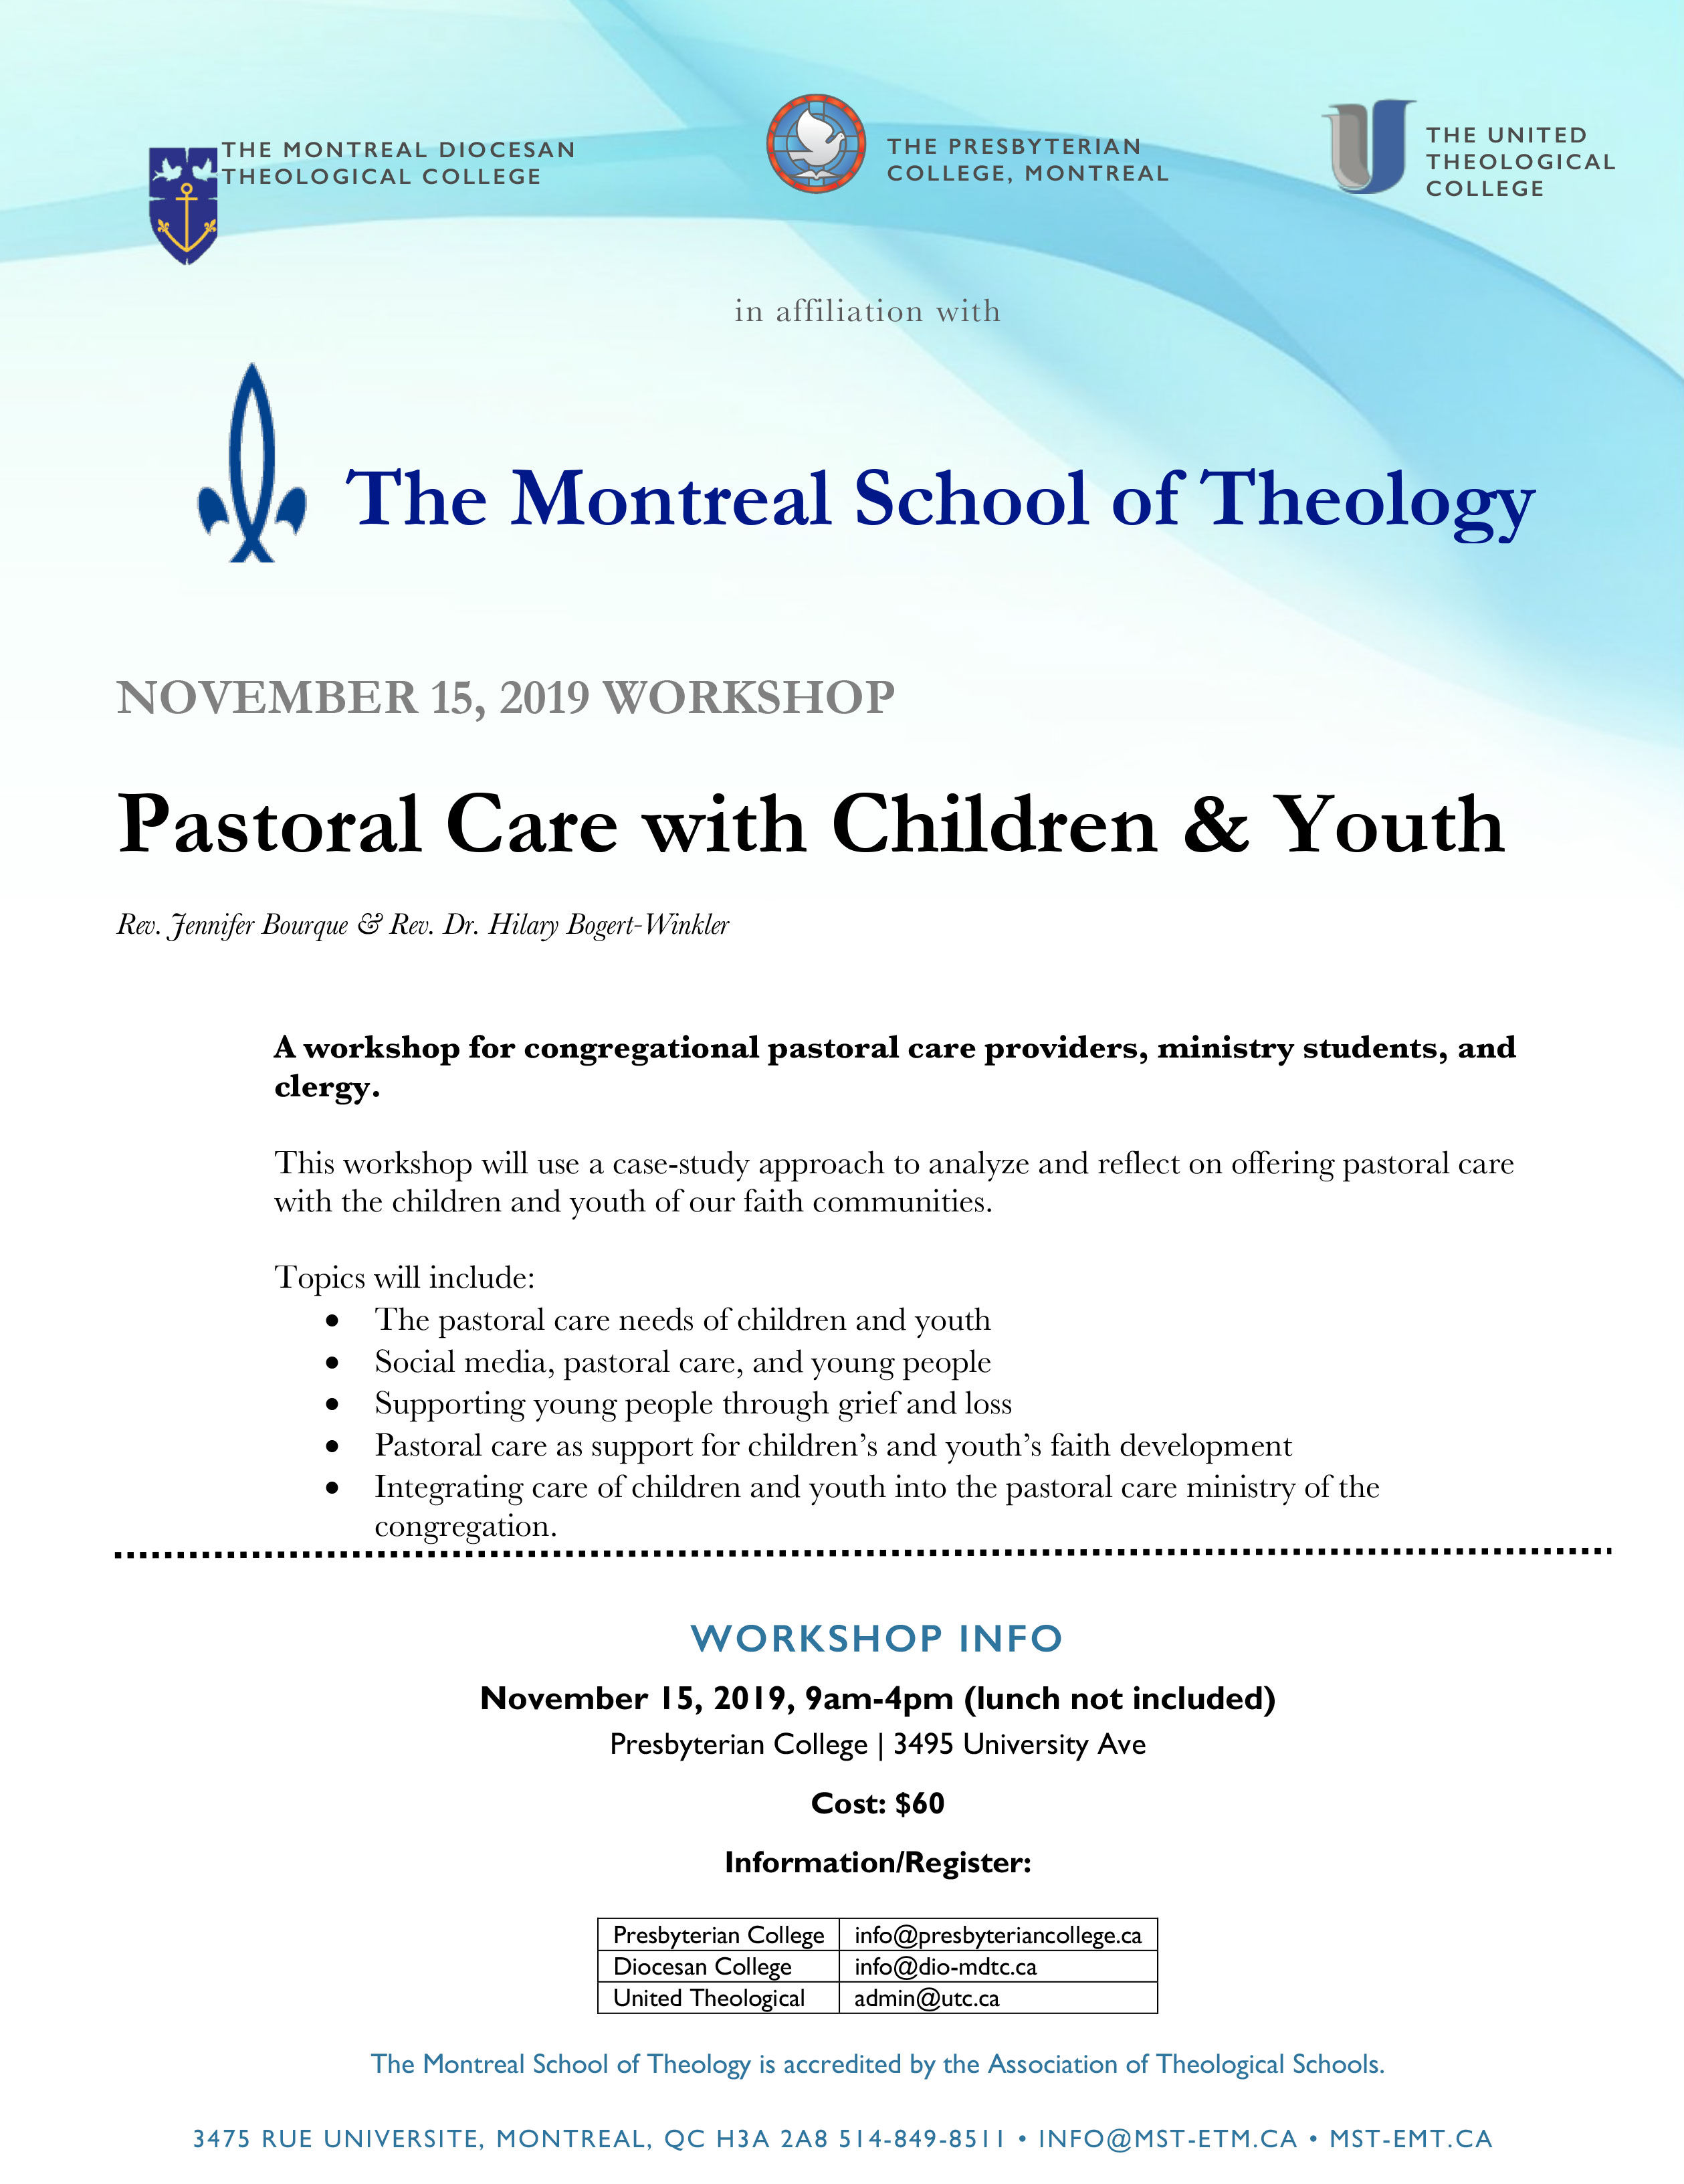 Nov 15th, 2019: Pastoral Care with Children & Youth Workshop